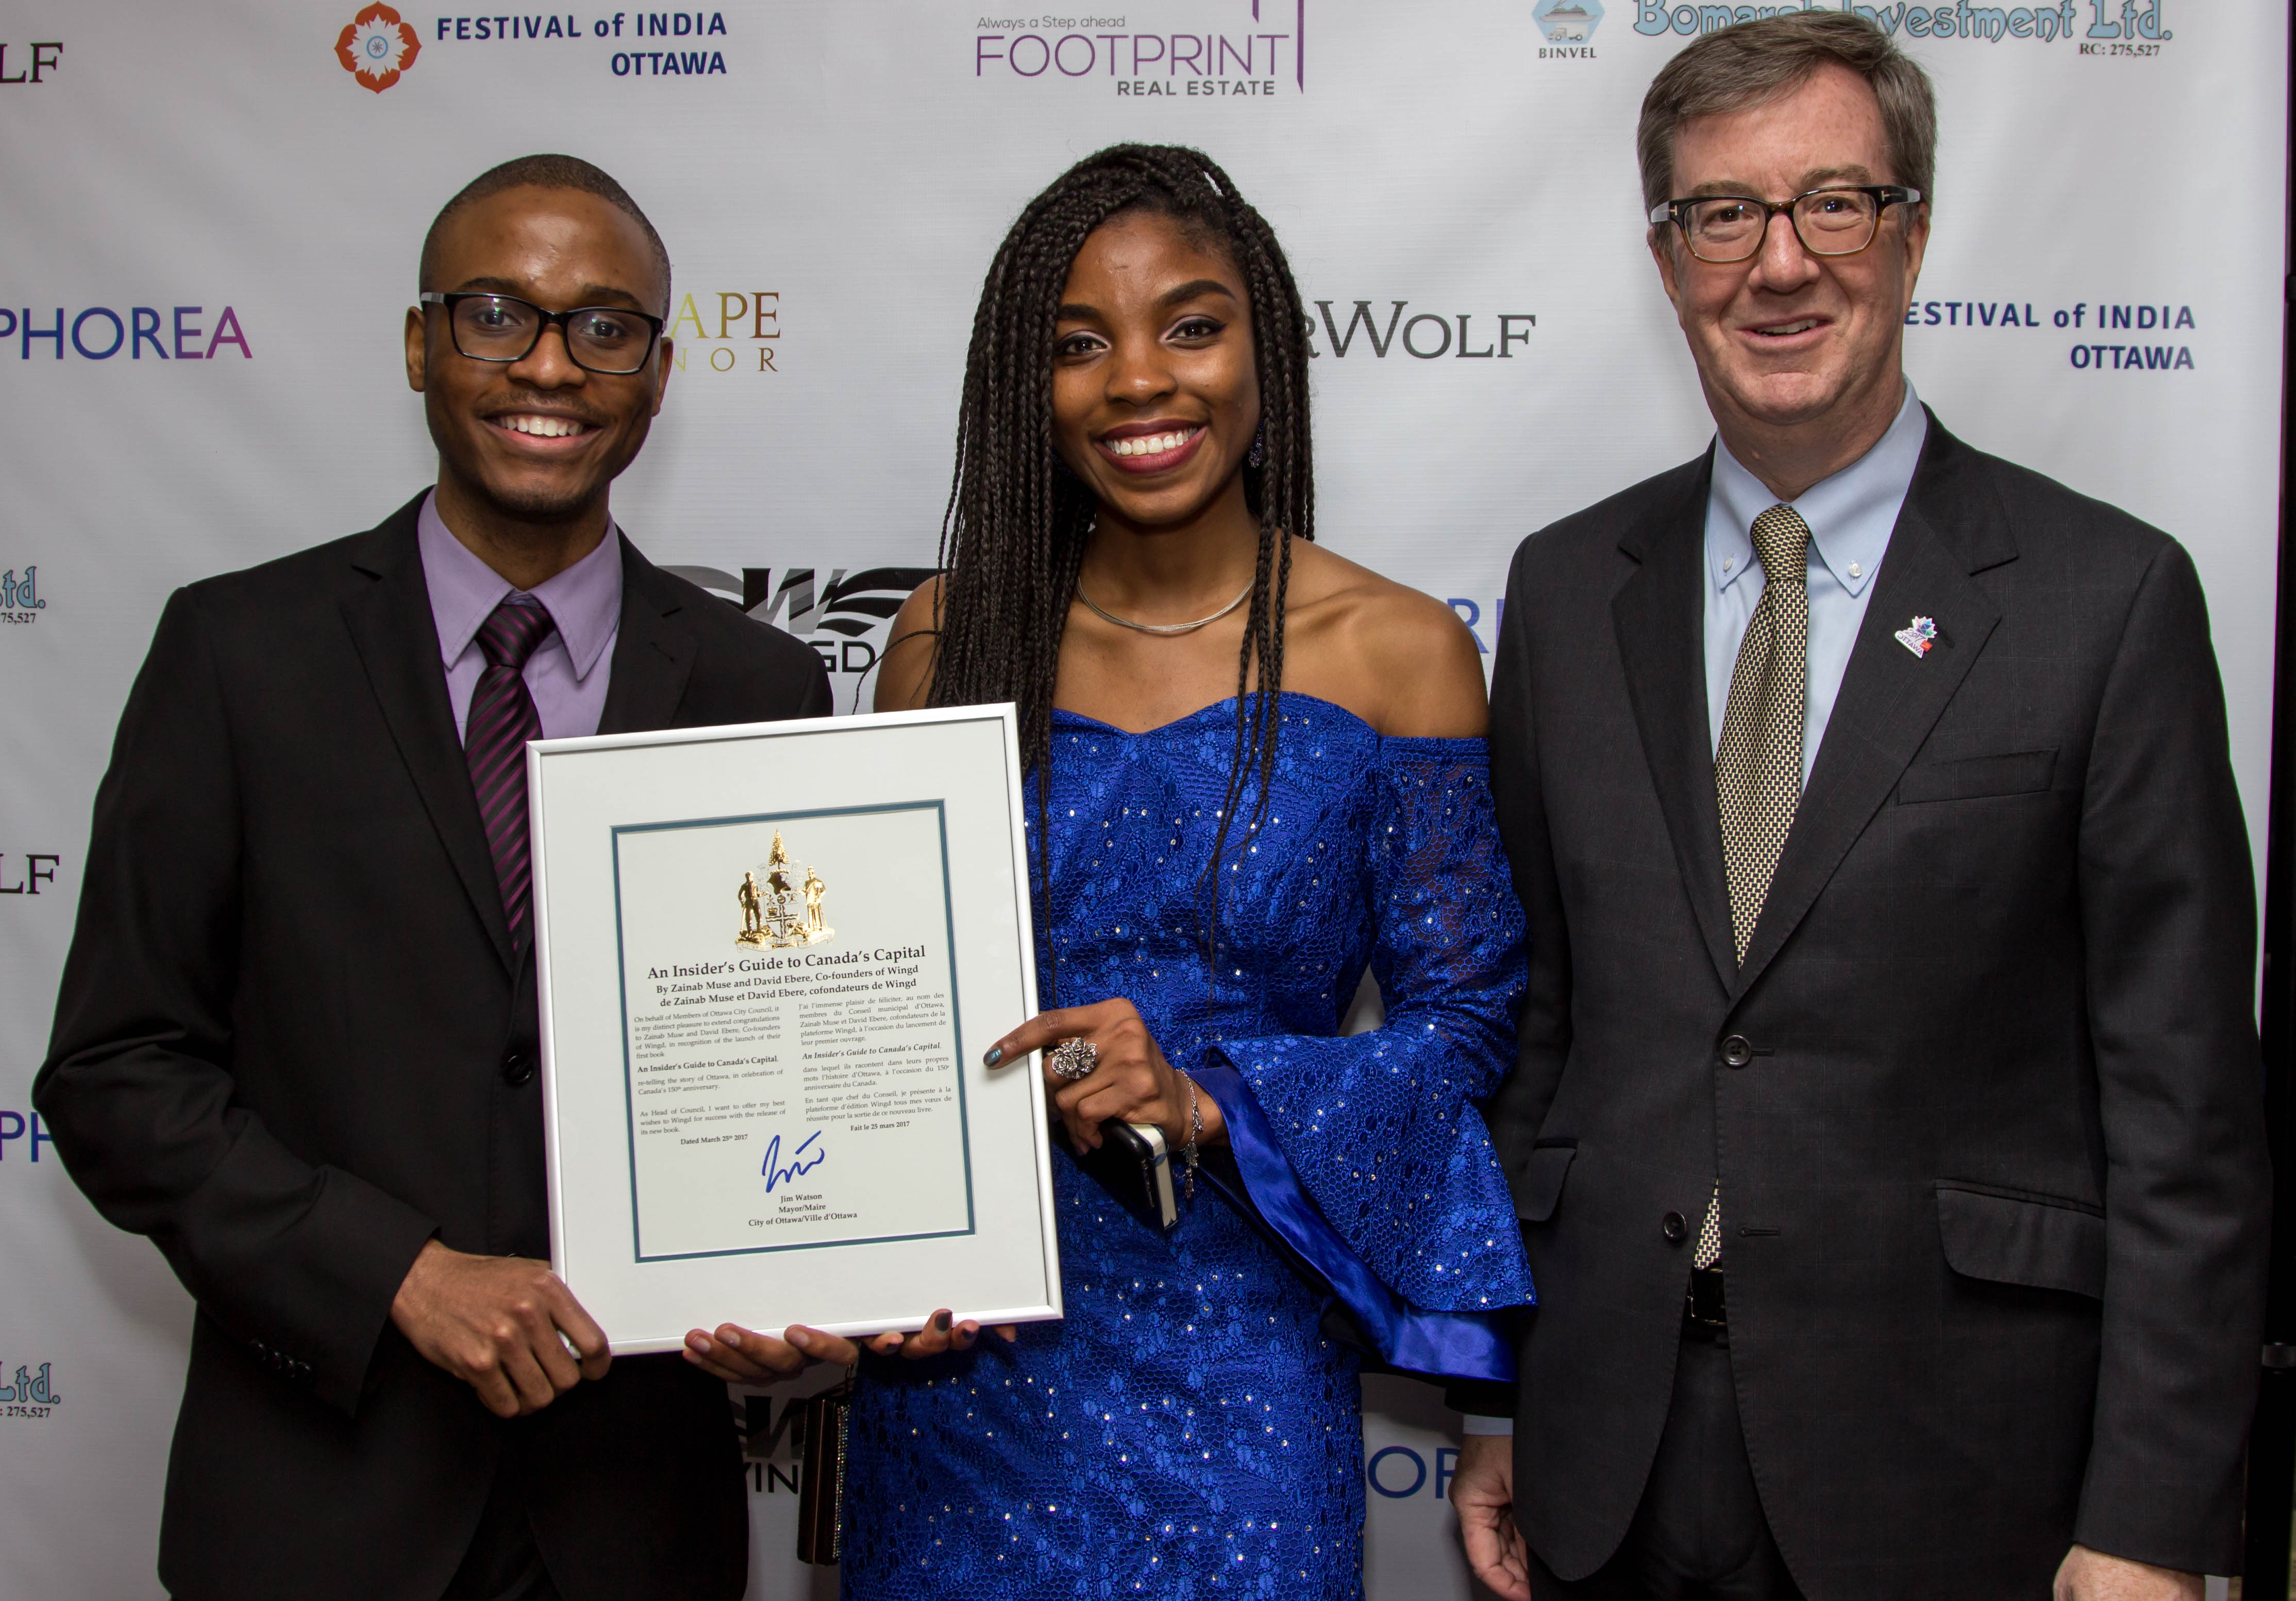 Mayor Jim Watson awarding the founders of Wingd, Zainab Muse and David Ebere with a plaque commemorating their efforts